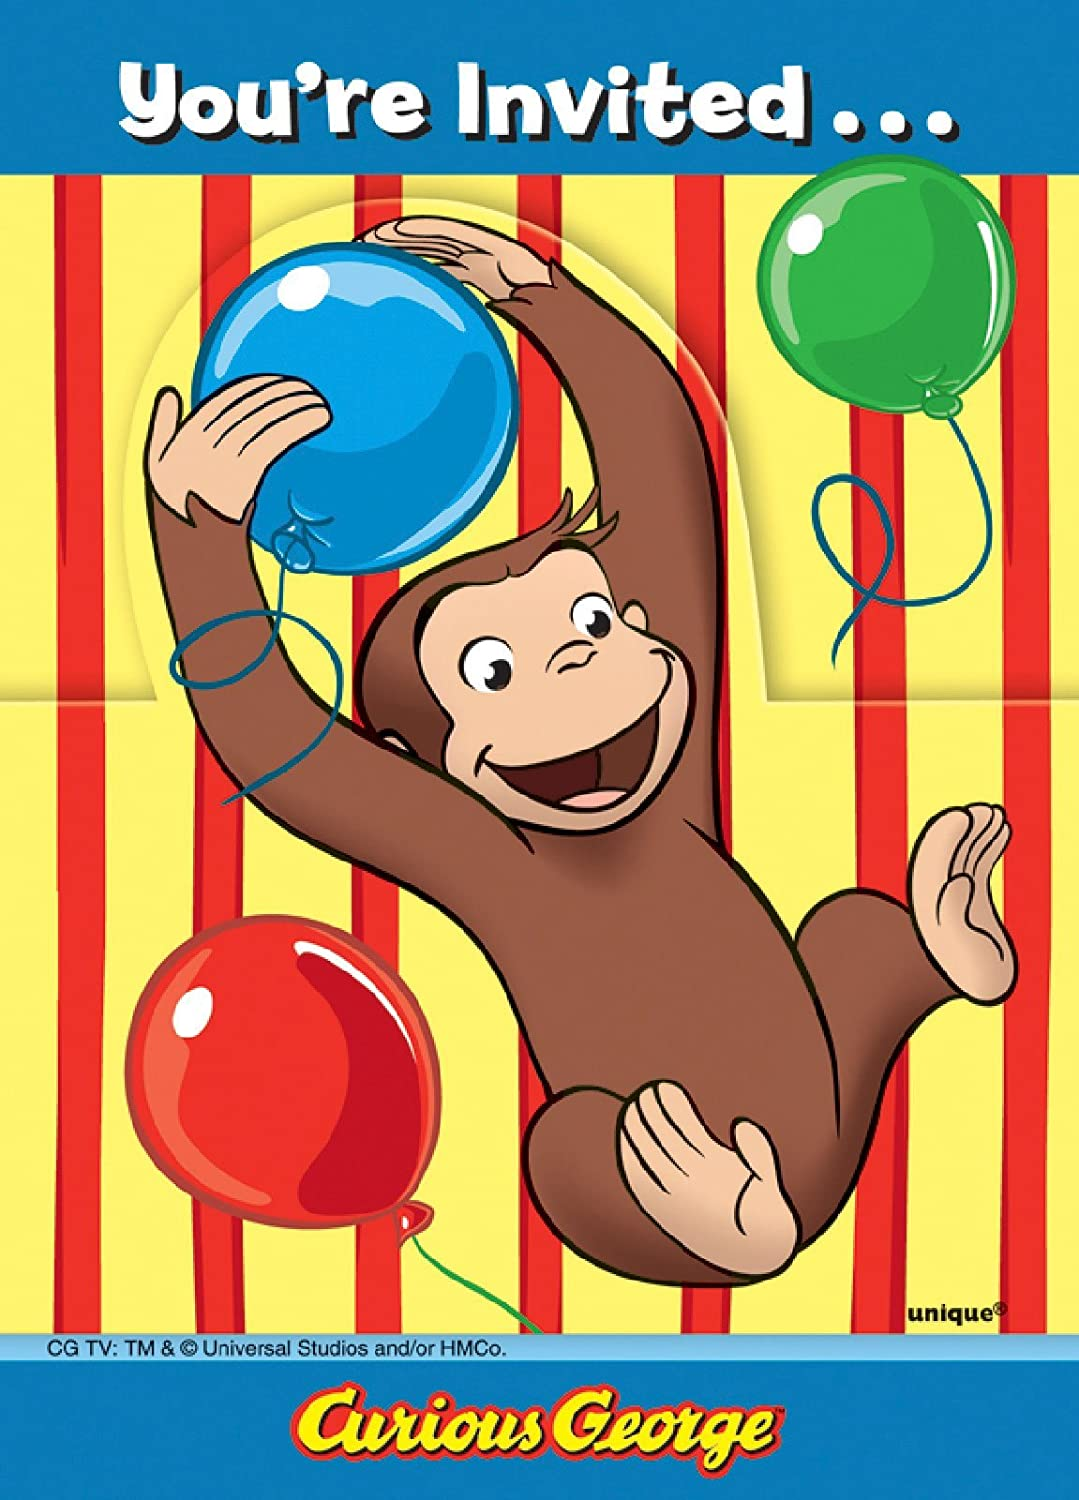 Amazoncom Unique 8 Curious George Invitations Toys Games